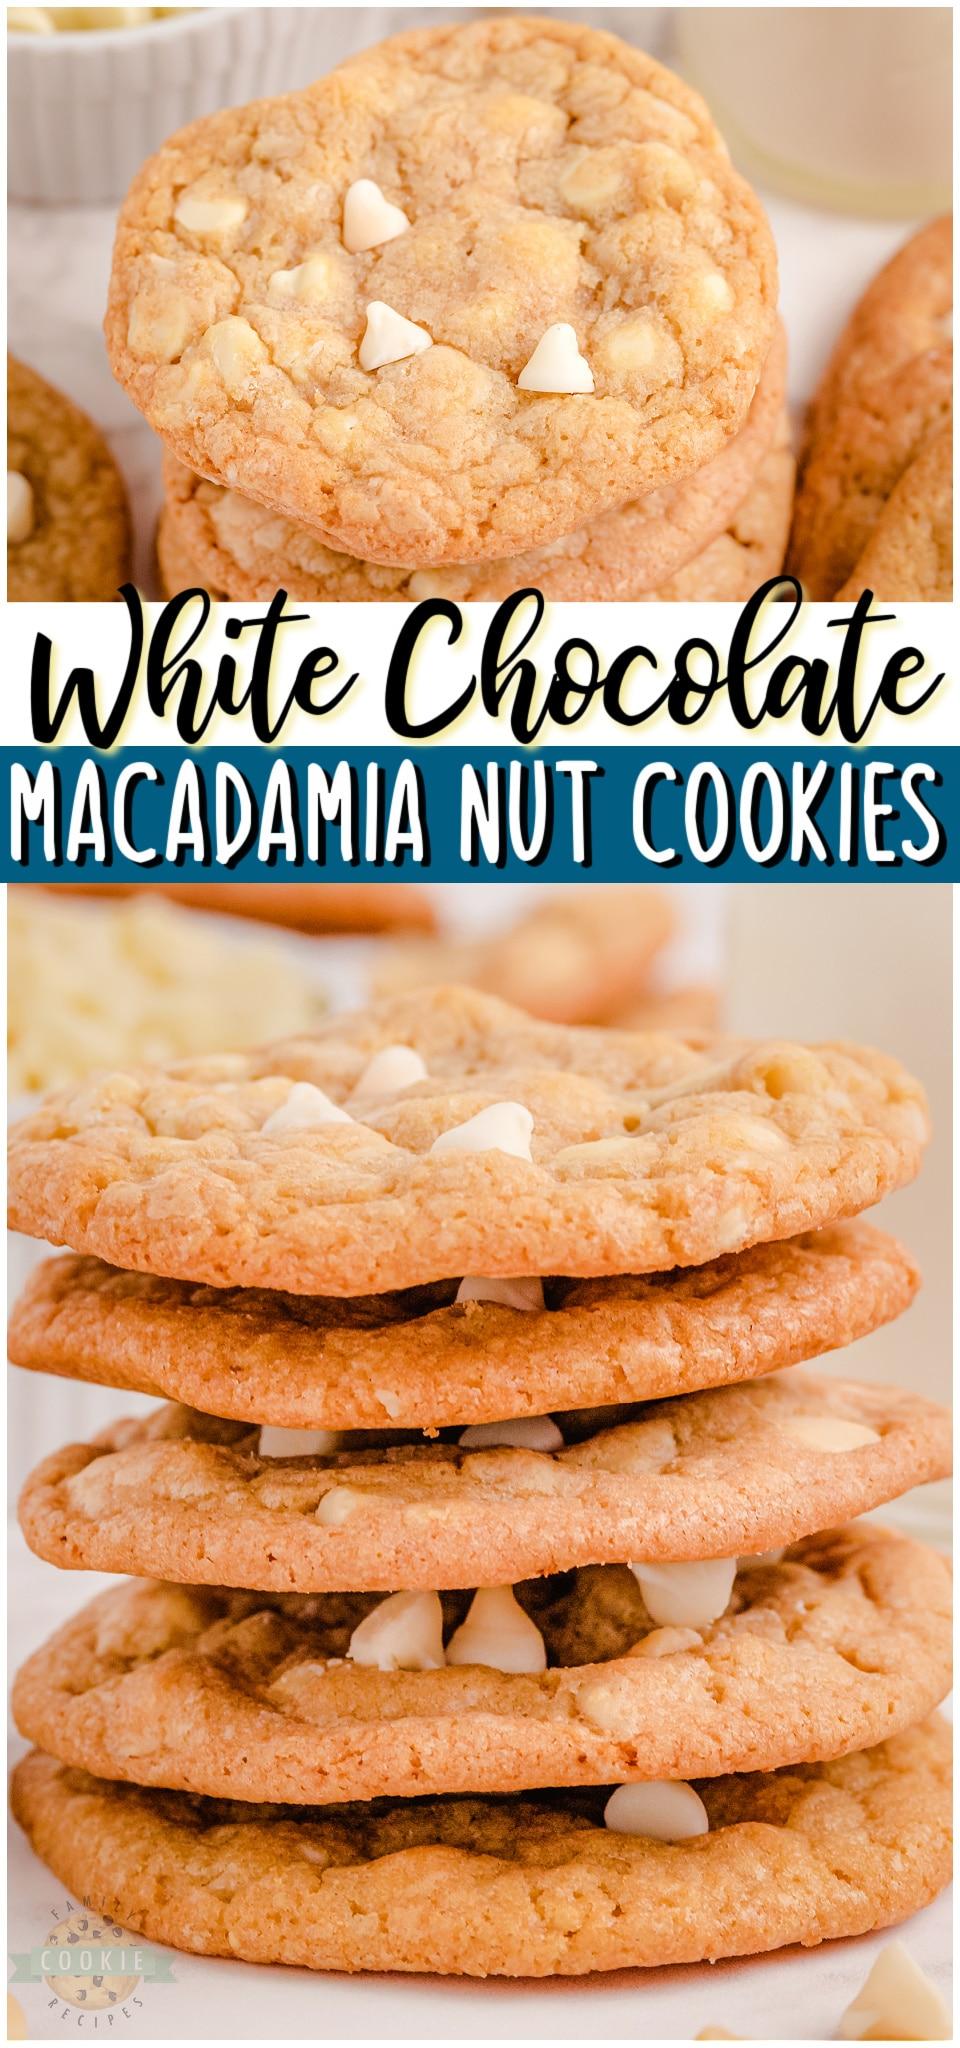 White chocolate chip cookies with macadamia nuts are a tasty treat that everyone can enjoy. With the soft and chewy cookies, buttery nuts and melt in your mouth chocolate chips, each bite is amazing!